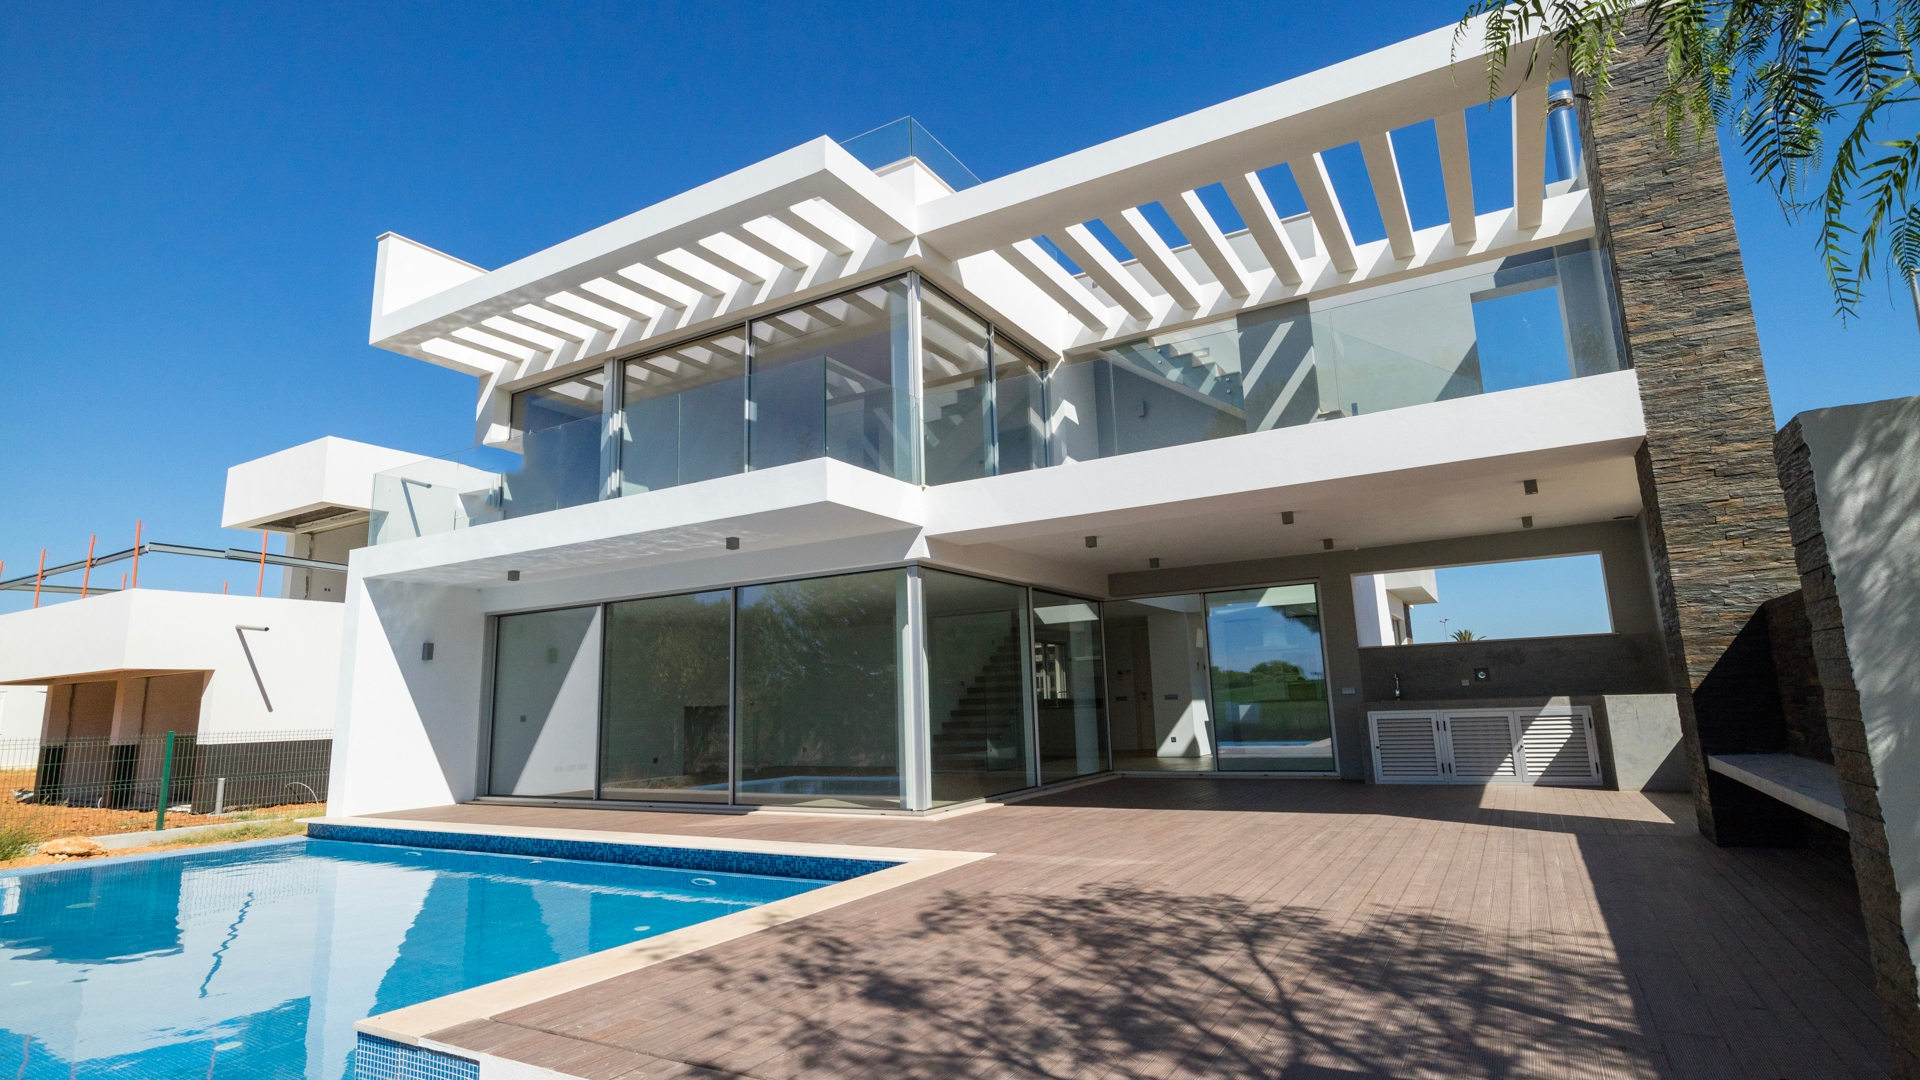 Exceptional Contemporary 4 Bedroom Villa with Front Line Golf Views, Vilamoura | VM1223 This modern and contemporary style villa located in Vilamoura has been finished to the highest standard with central air conditioning and heating, high specification finishes and golf front views.